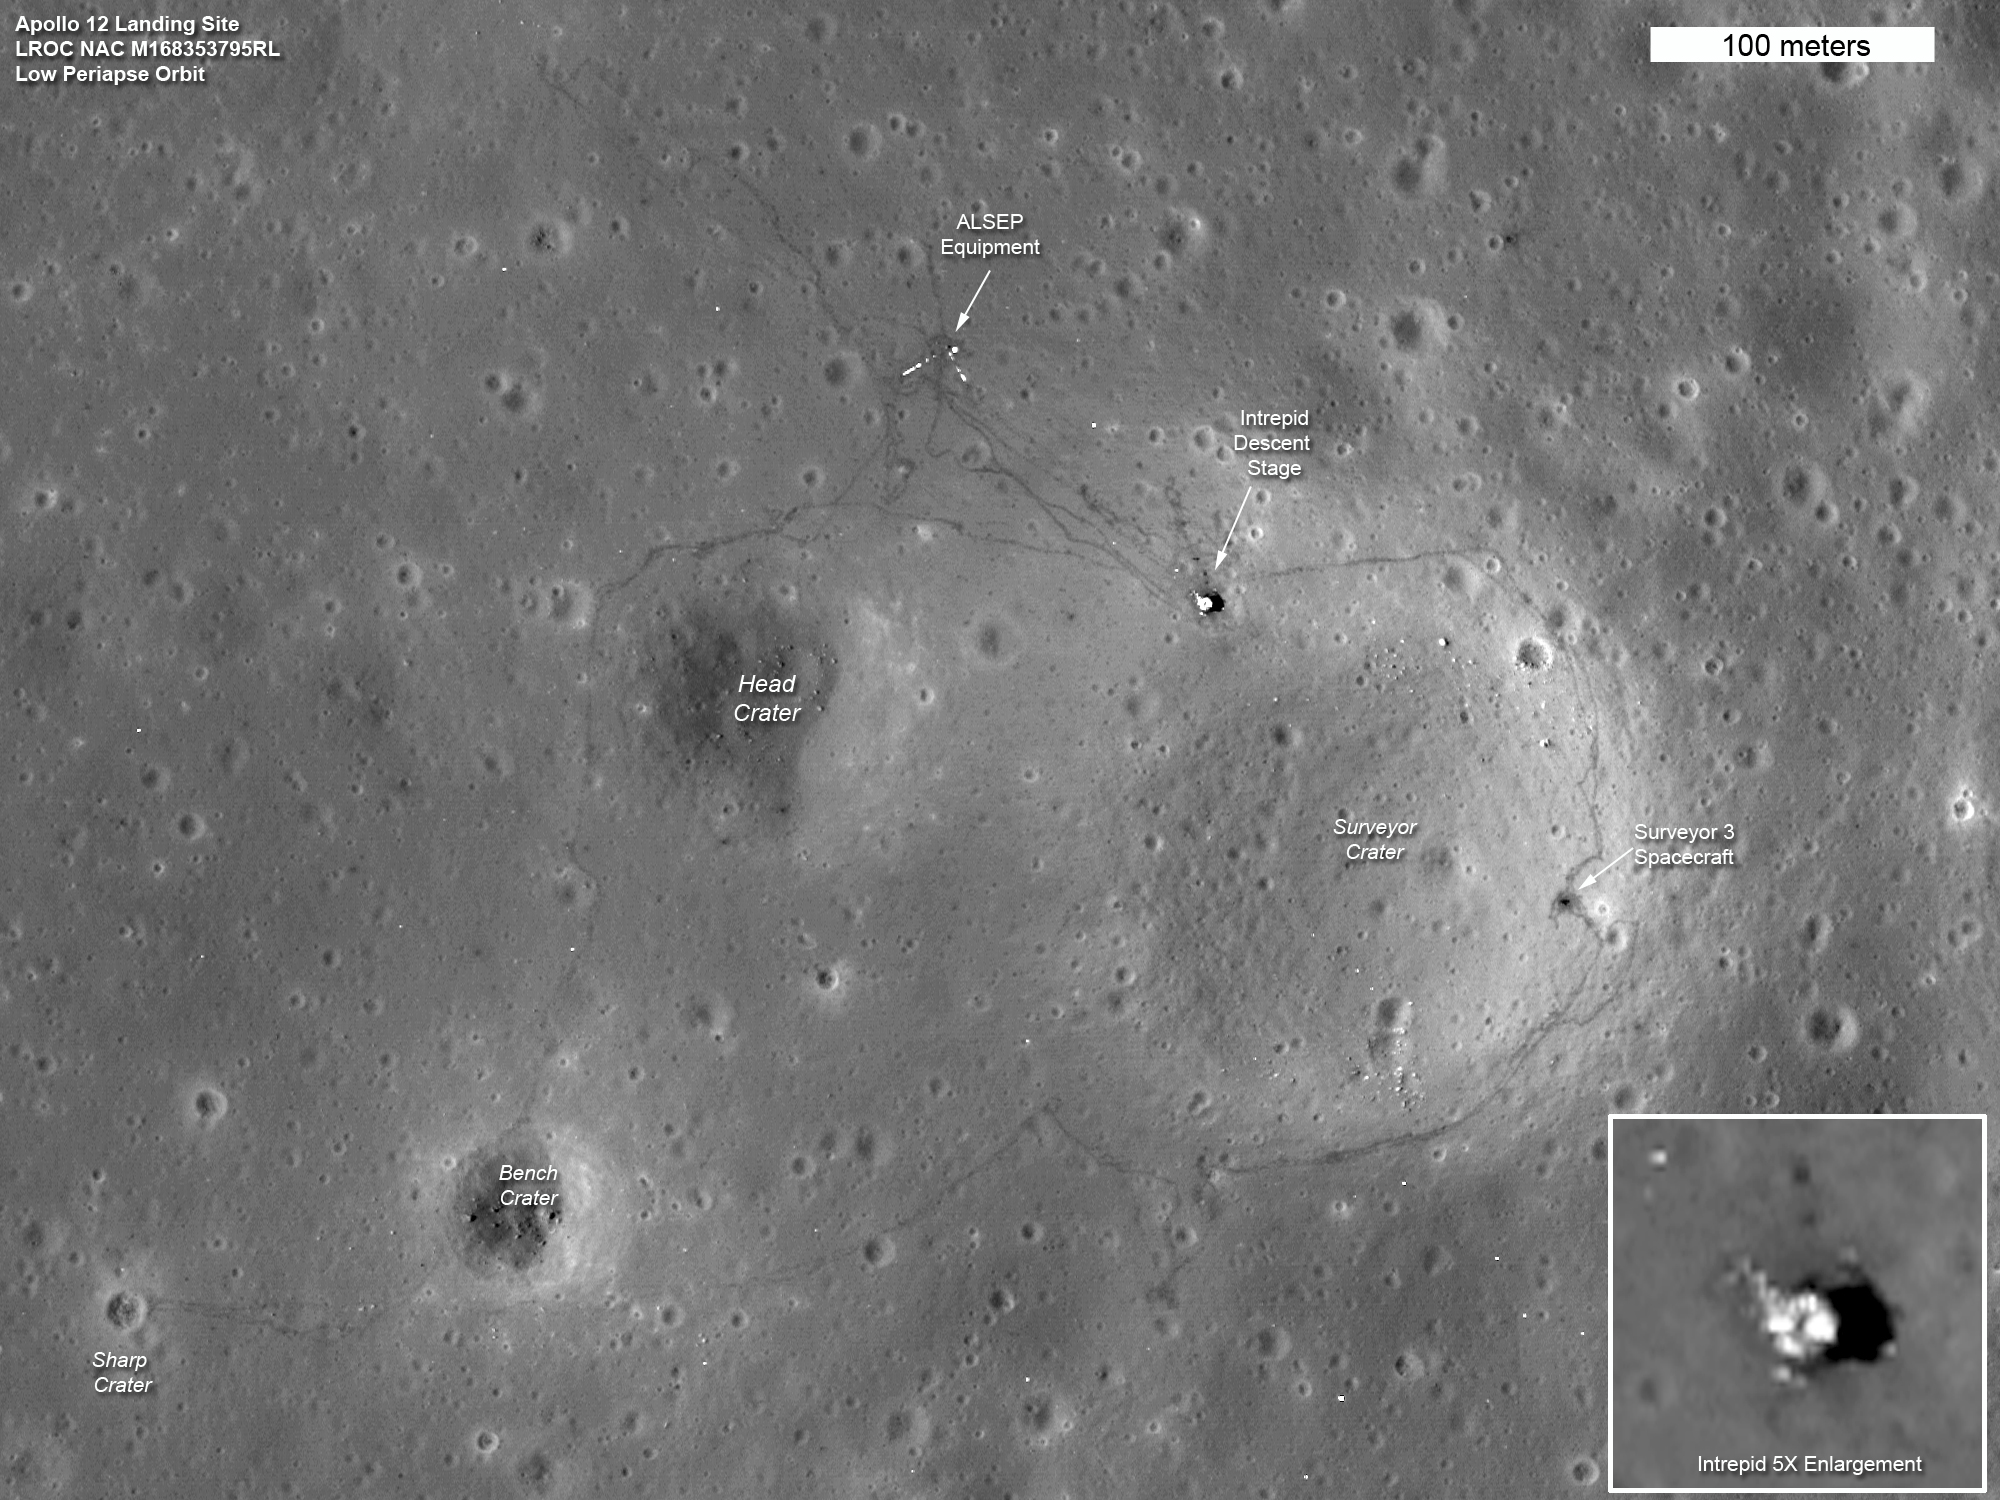 Apollo 12 landing site, taken from NASA&#039;s Lunar Reconnaissance Orbiter in 2011